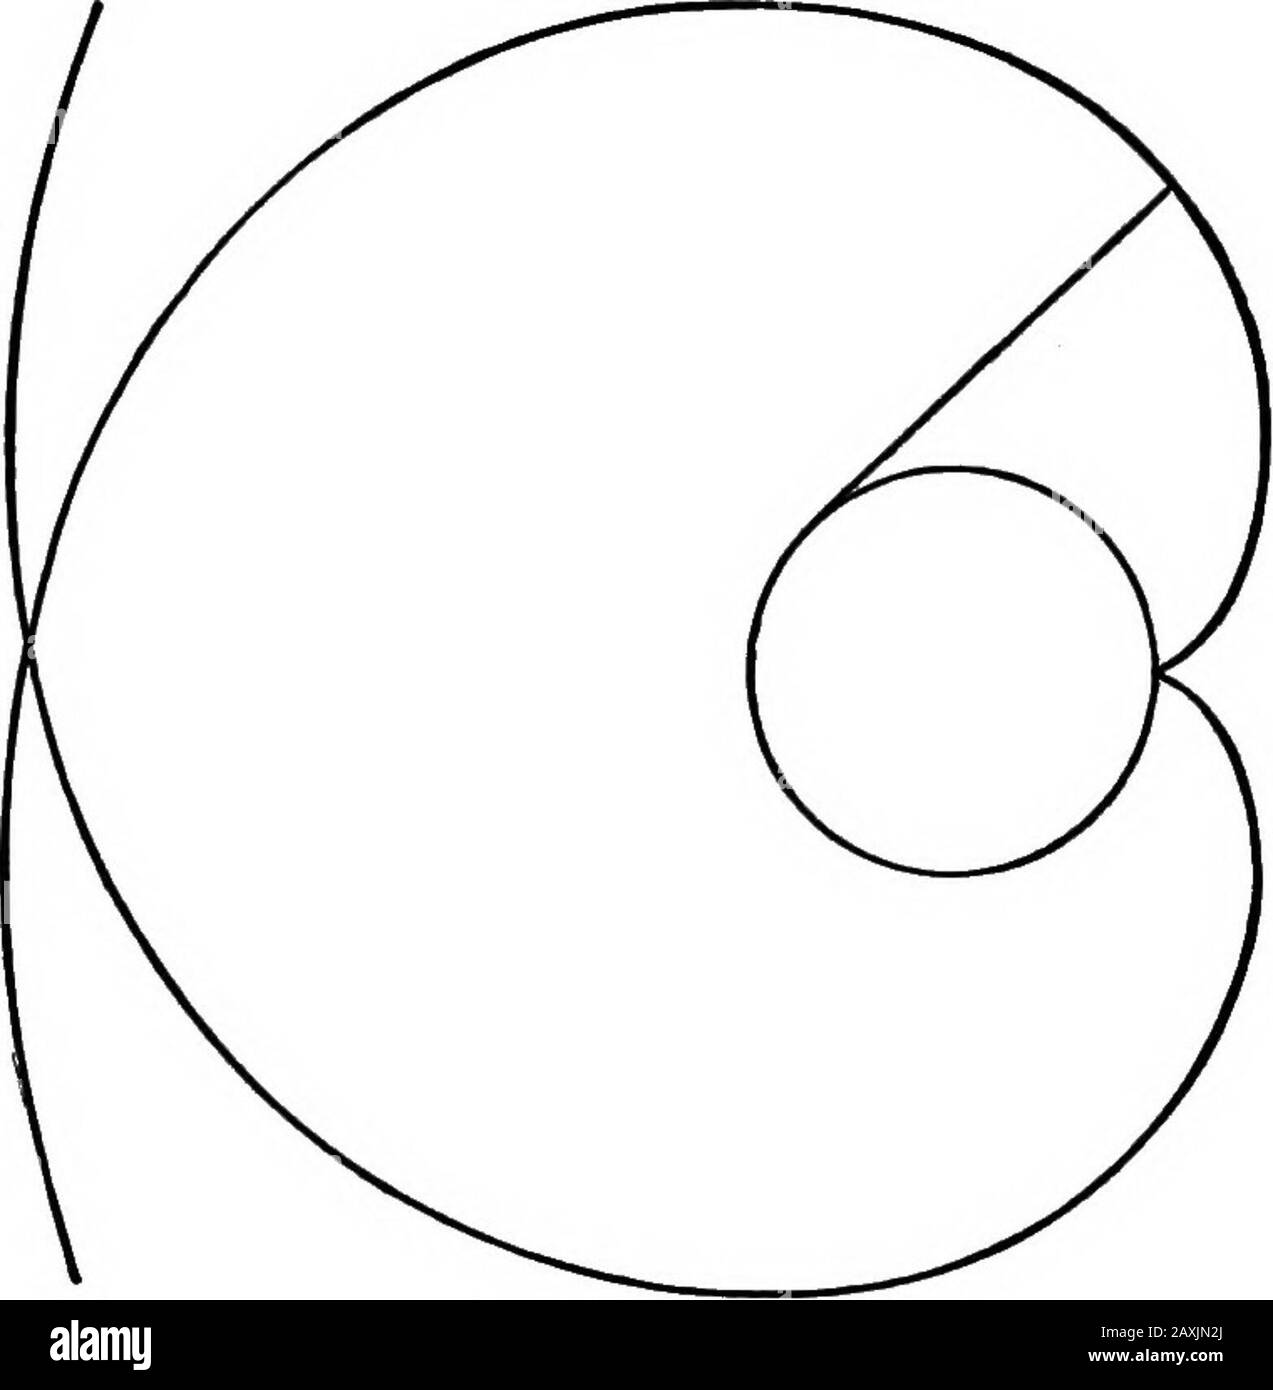 An elementary course of infinitesimal calculus . 160, that the tangents fco the given curve are normalsto the locus of Q, so that this locus fulfils the above defini-tion of an involute. And, by varying the constant, weobtain a series of involutes of the same curve. As a concrete example we may imagine a string to be woundon a material arc of the given shape, being attached to a fixedpoint on it. The curve traced out by any point on the freeportion of the string will be an involute. This is in fact theorigin of the term. Ex. 1. The tractrix is an involute of the catenary; see Art.134. Ex. 2. I Stock Photo